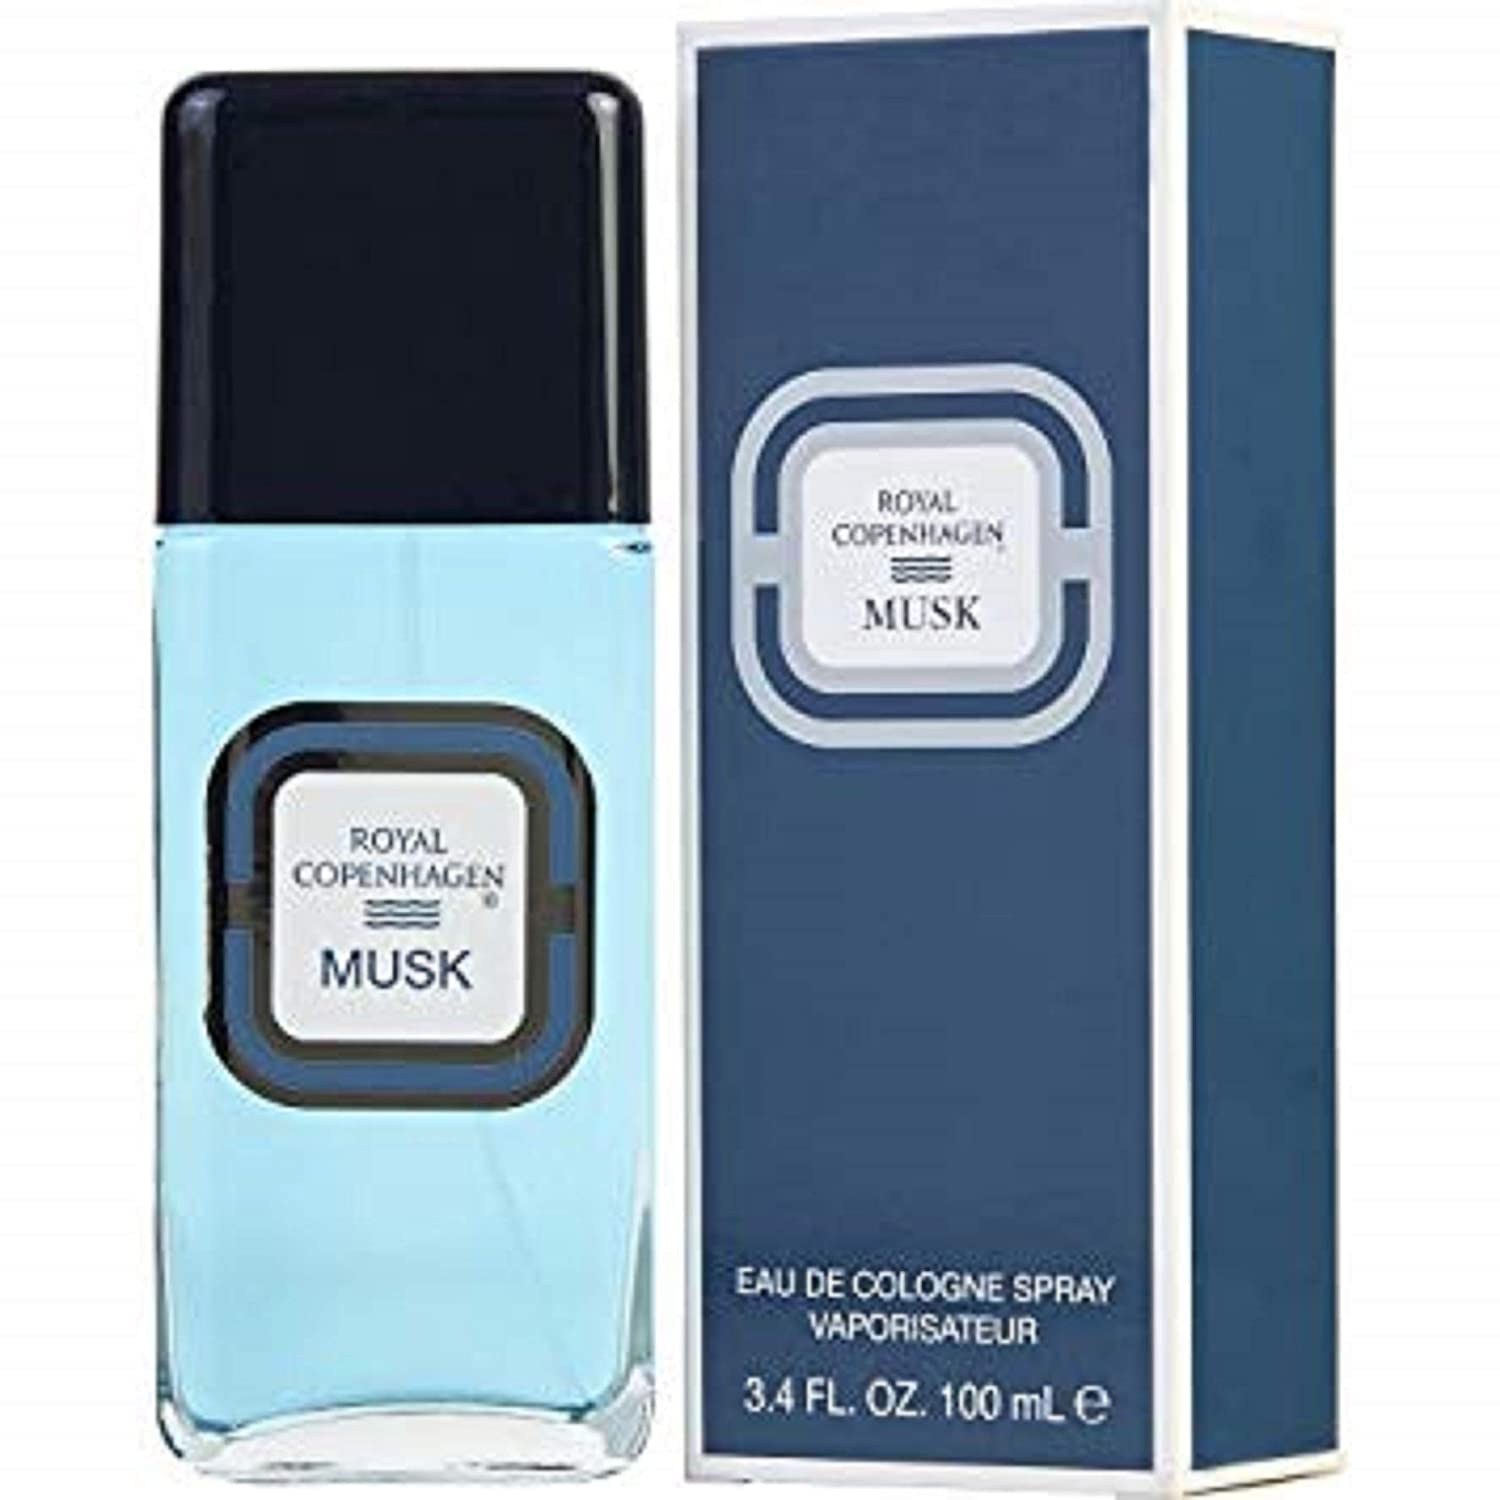 Royal Copenhagen Musk For Men. Cologne Spray 3.4 Oz